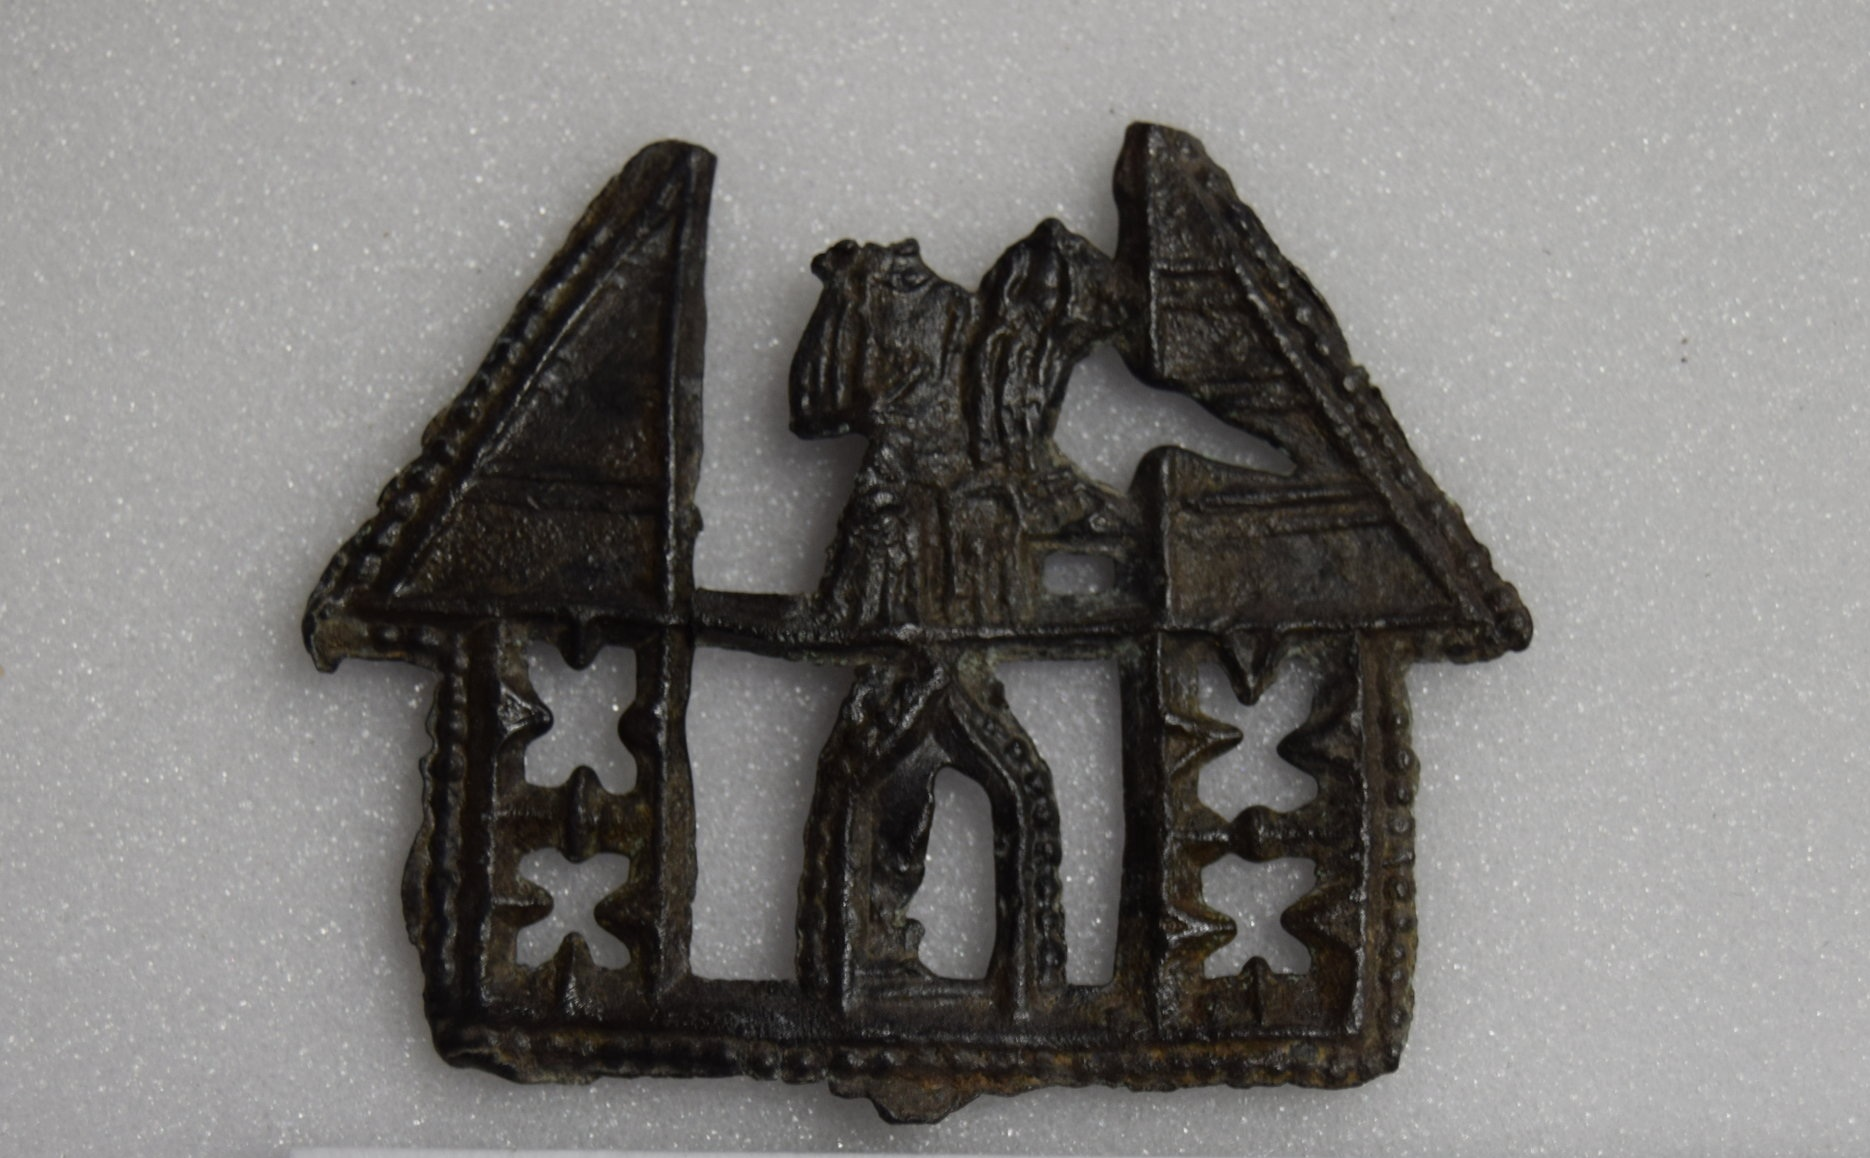 Lead Tin Alloy, Holy House with Mary and Child, Holy House of Walsingham, 1440-1459, found in the Purfleet Quay, 400 x 310 mm. King's Lynn, Lynn Museum, PB 21 (Kunera 07412). Photo courtesy of Shannon Phaneuf.